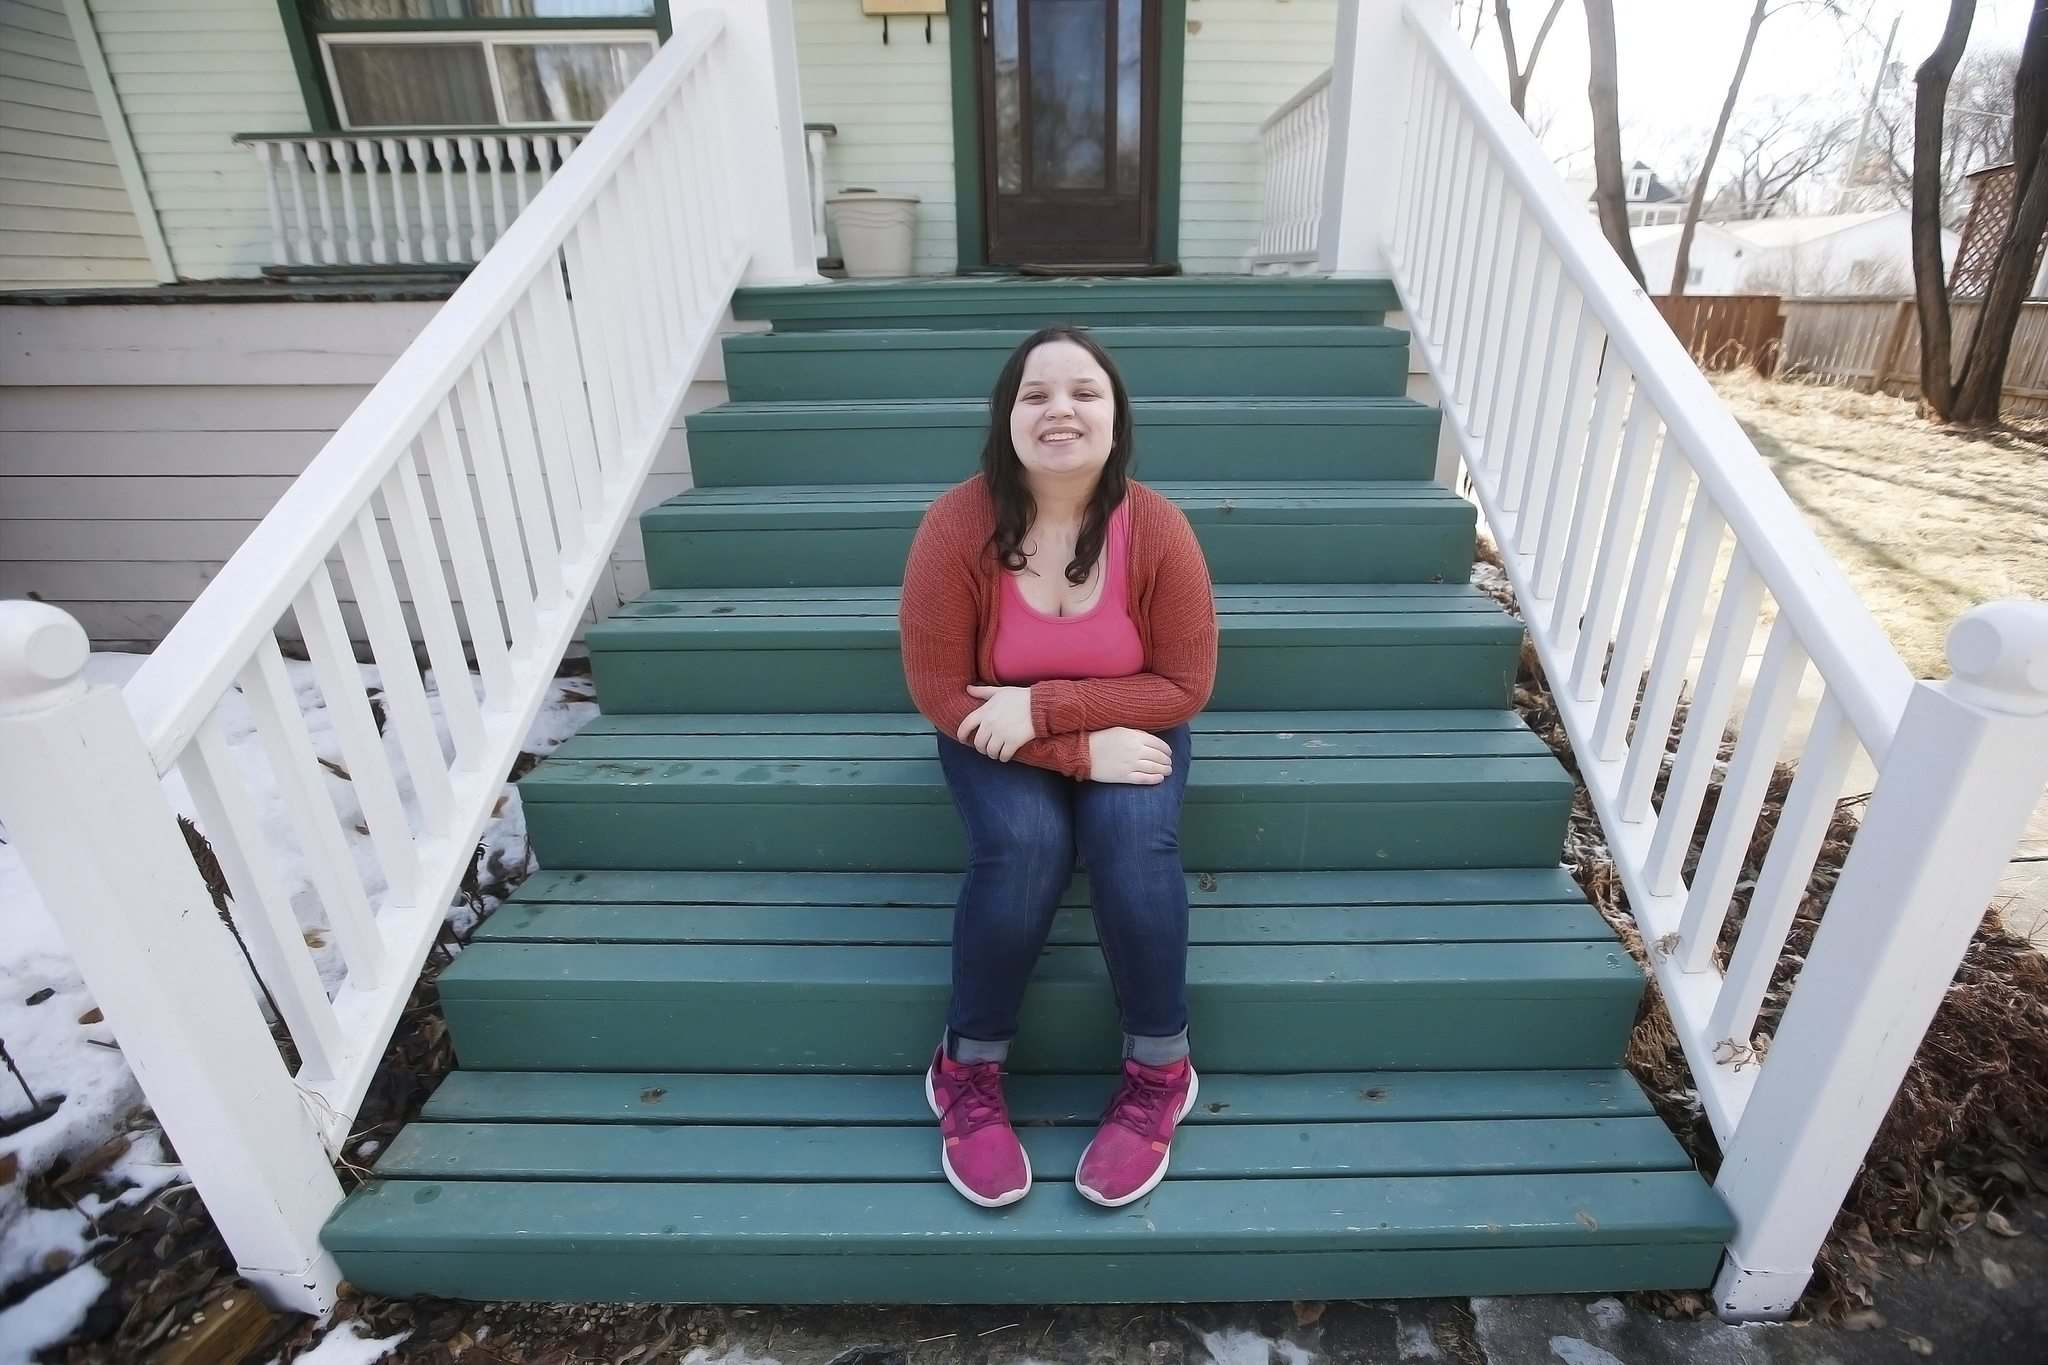 Grade 12 student Shira Hoult, 17, says she is sad when she thinks about never returning to the classrooms of Gray Academy as a student again.</p>